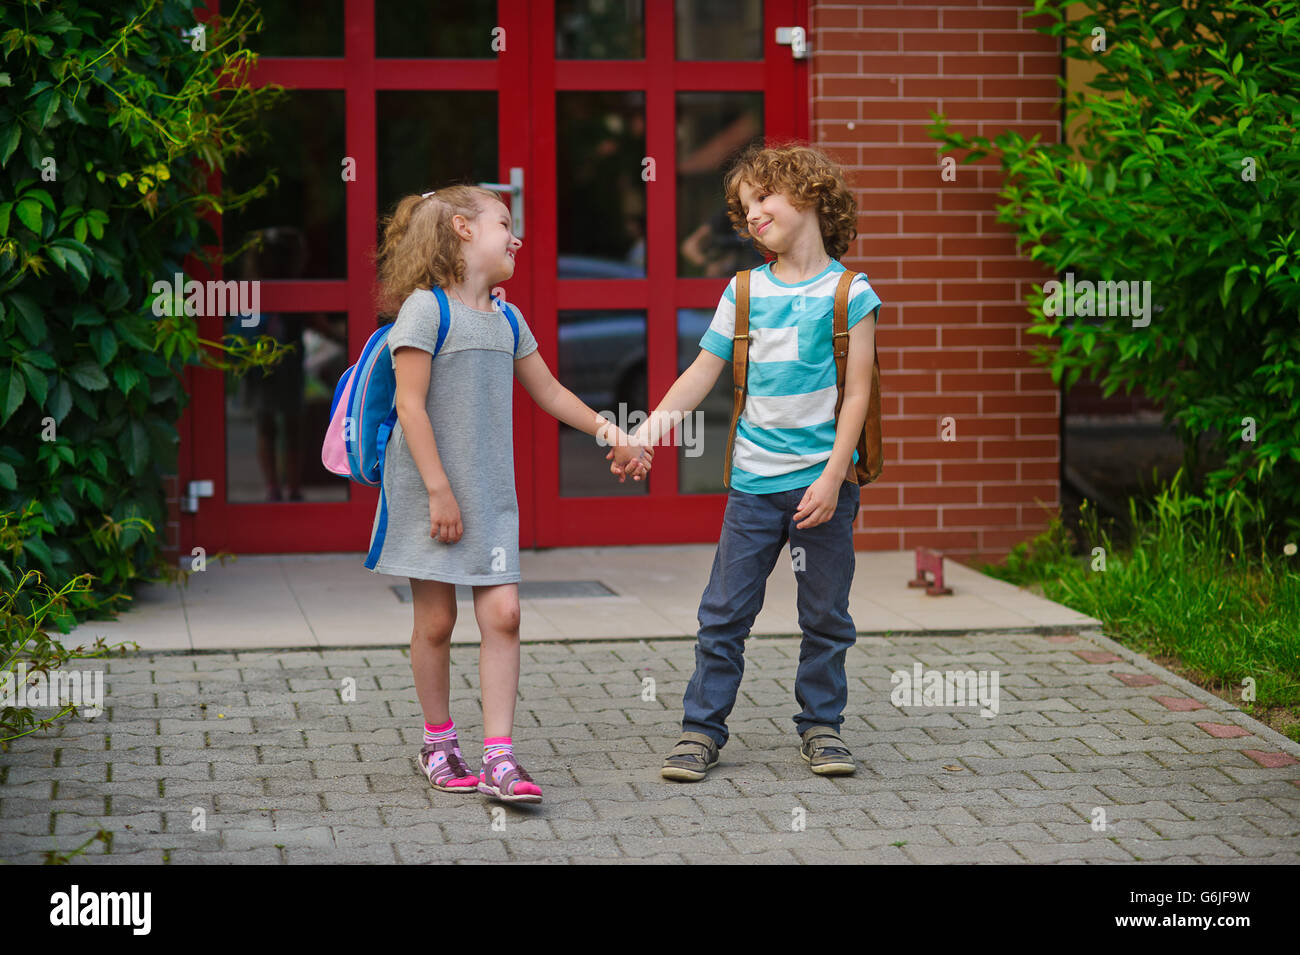 Little school students go on a schoolyard holding hands. Children with a smile look at each other. Boy and girl. - Stock Image